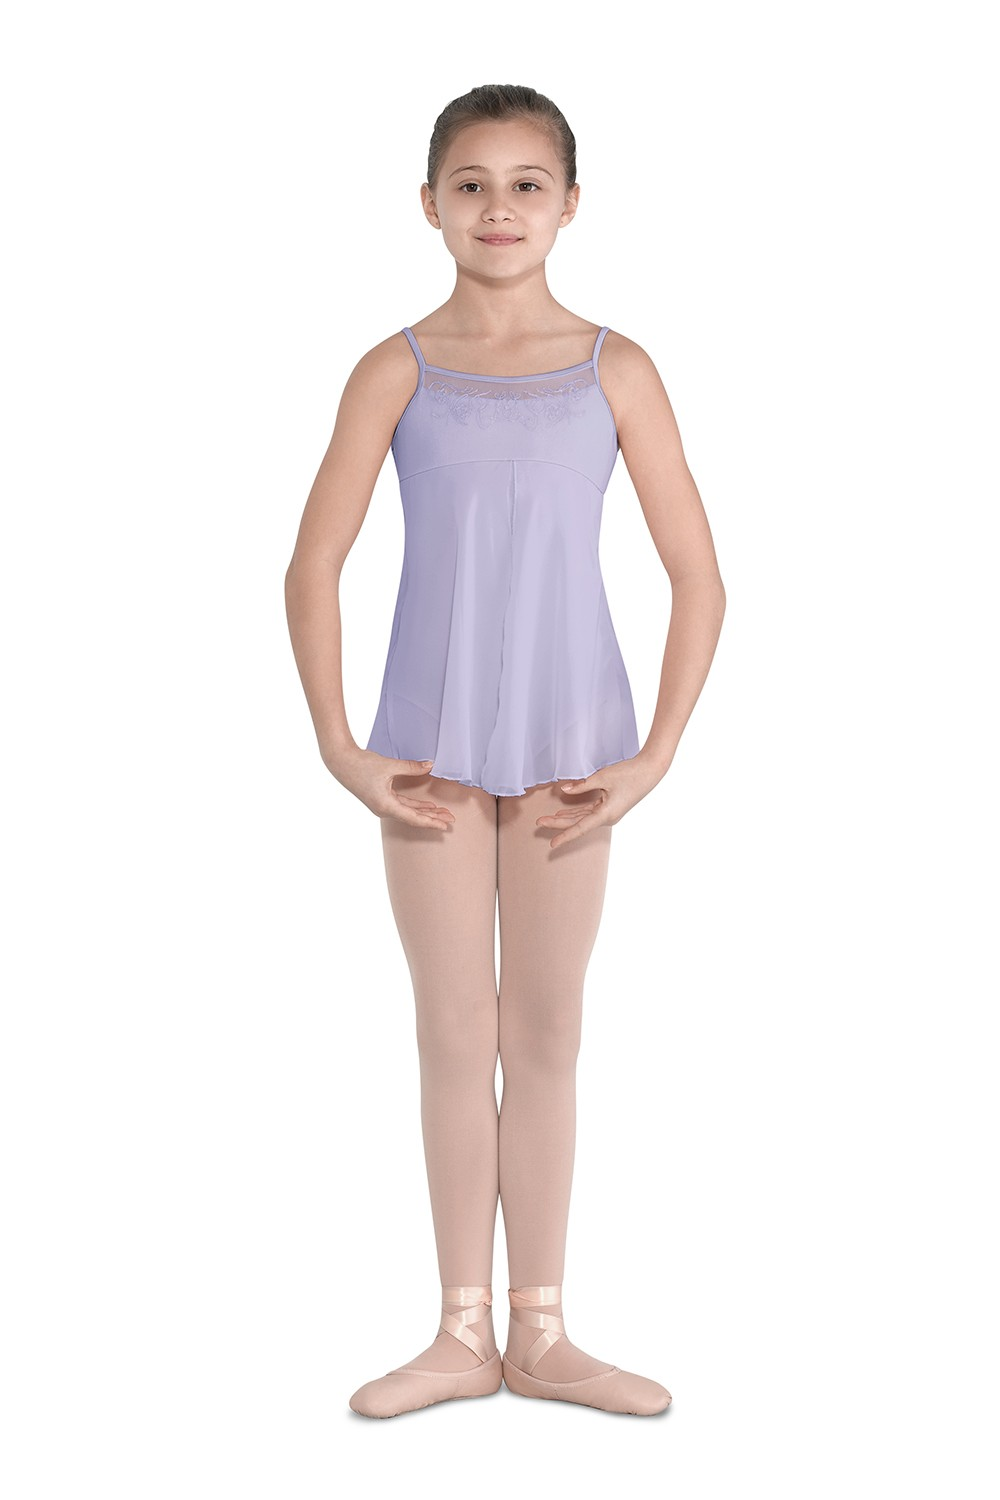 Clarice Children's Dance Leotards